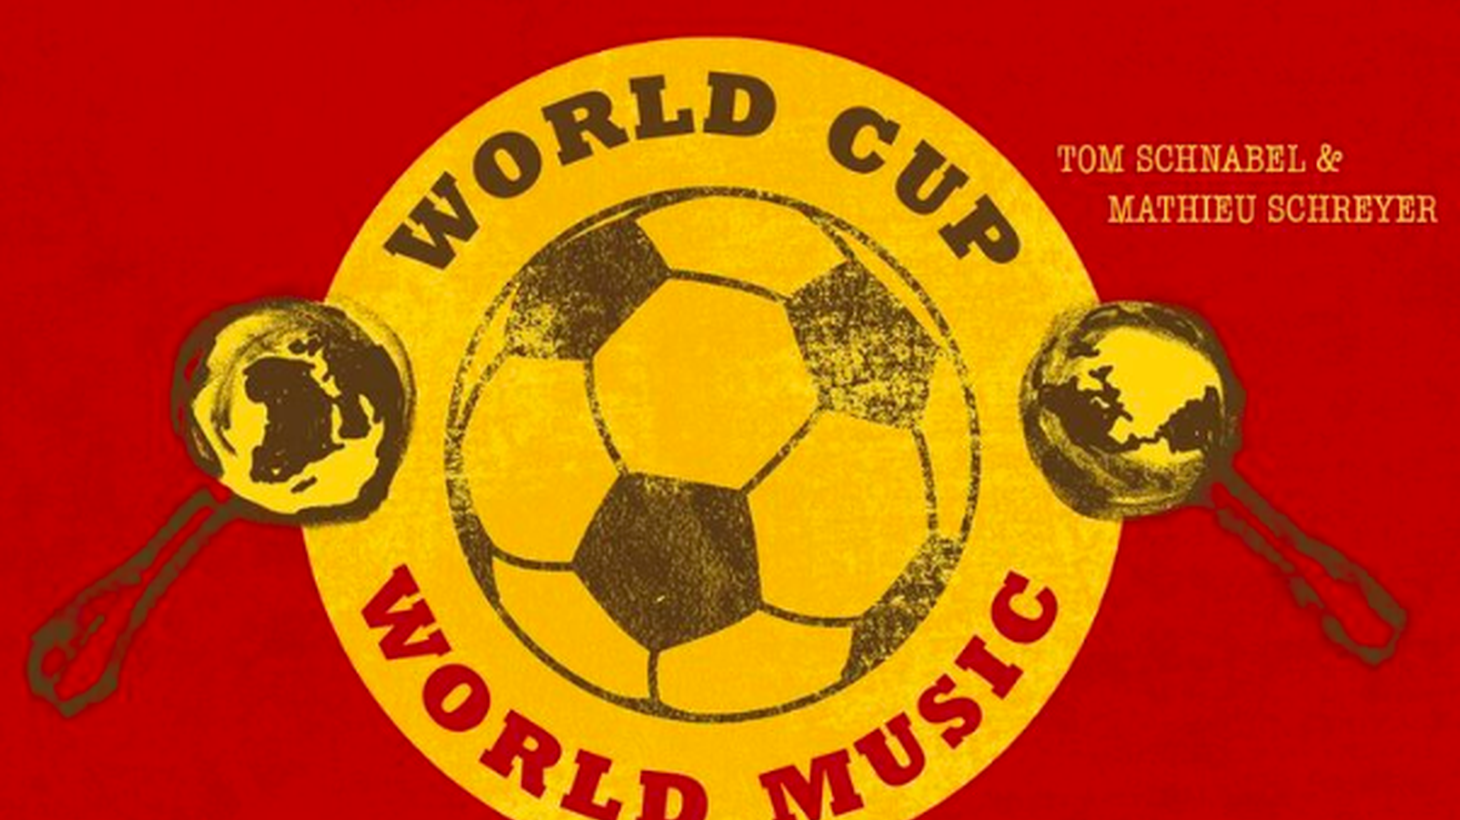 Rhythm Planet host Tom Schnabel and DJ Mathieu Schreyer drop by MBE for a World Cup musical preview at 10am.